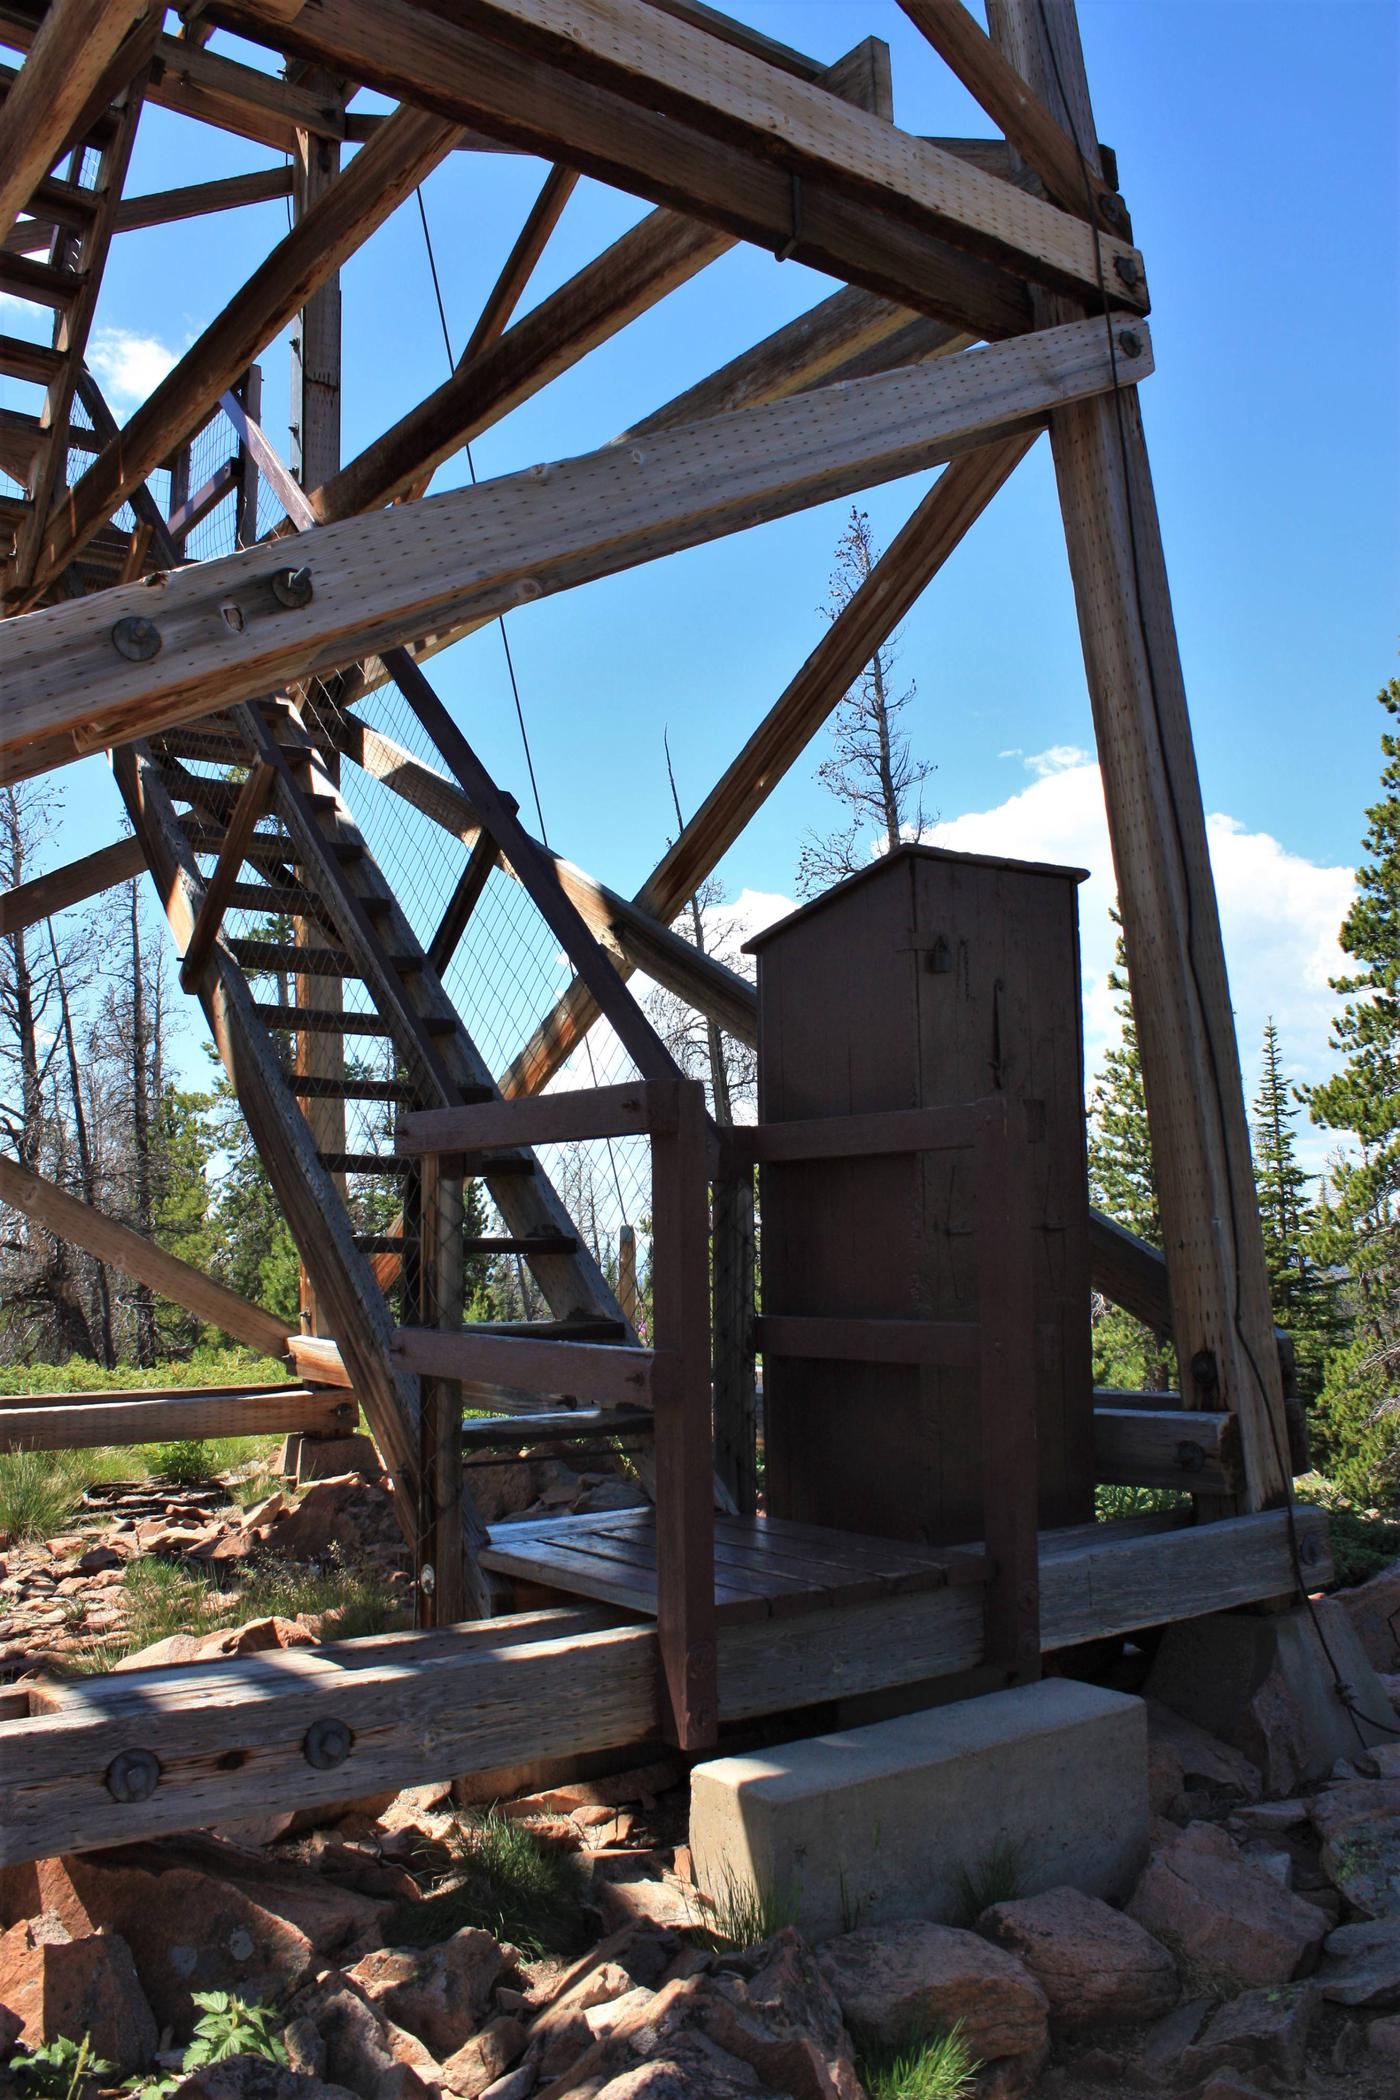 Spruce Mountain Fire Lookout Tower stairway entrance